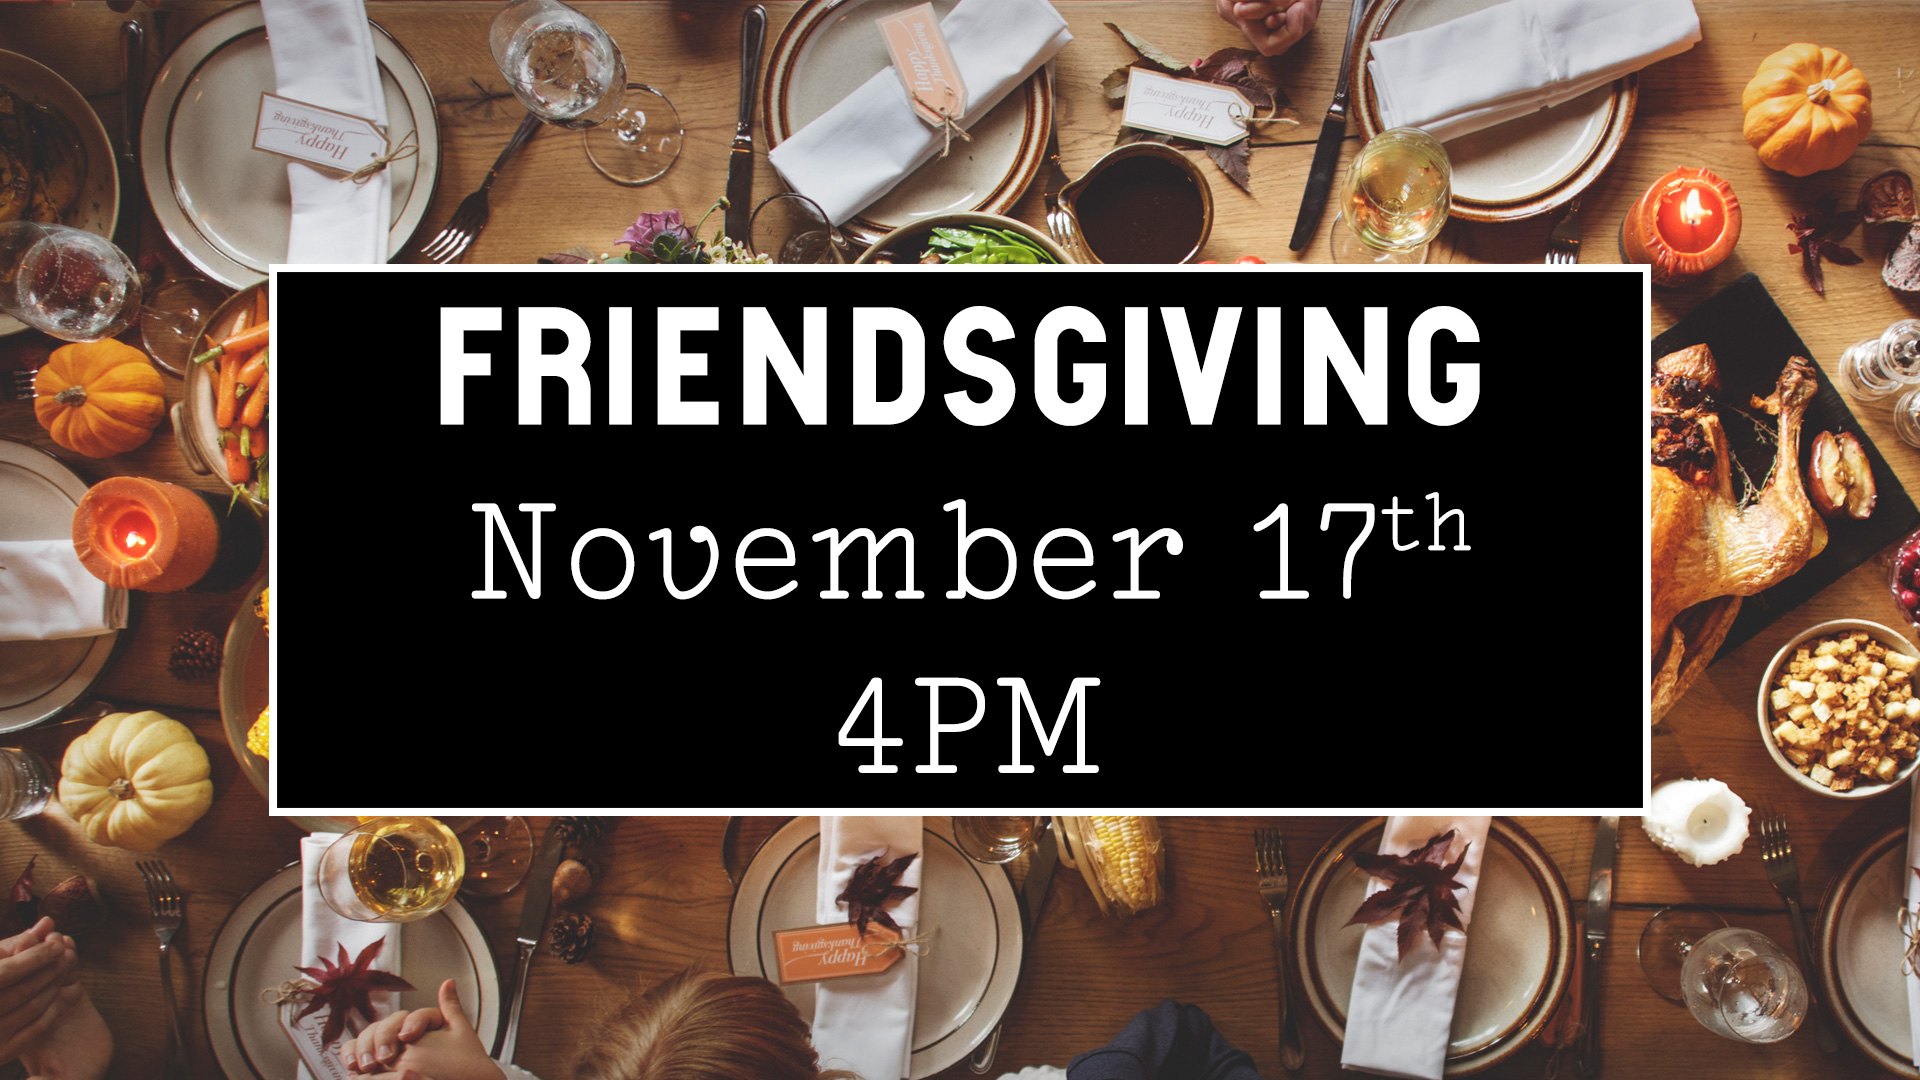 friendsgiving-event.jpg